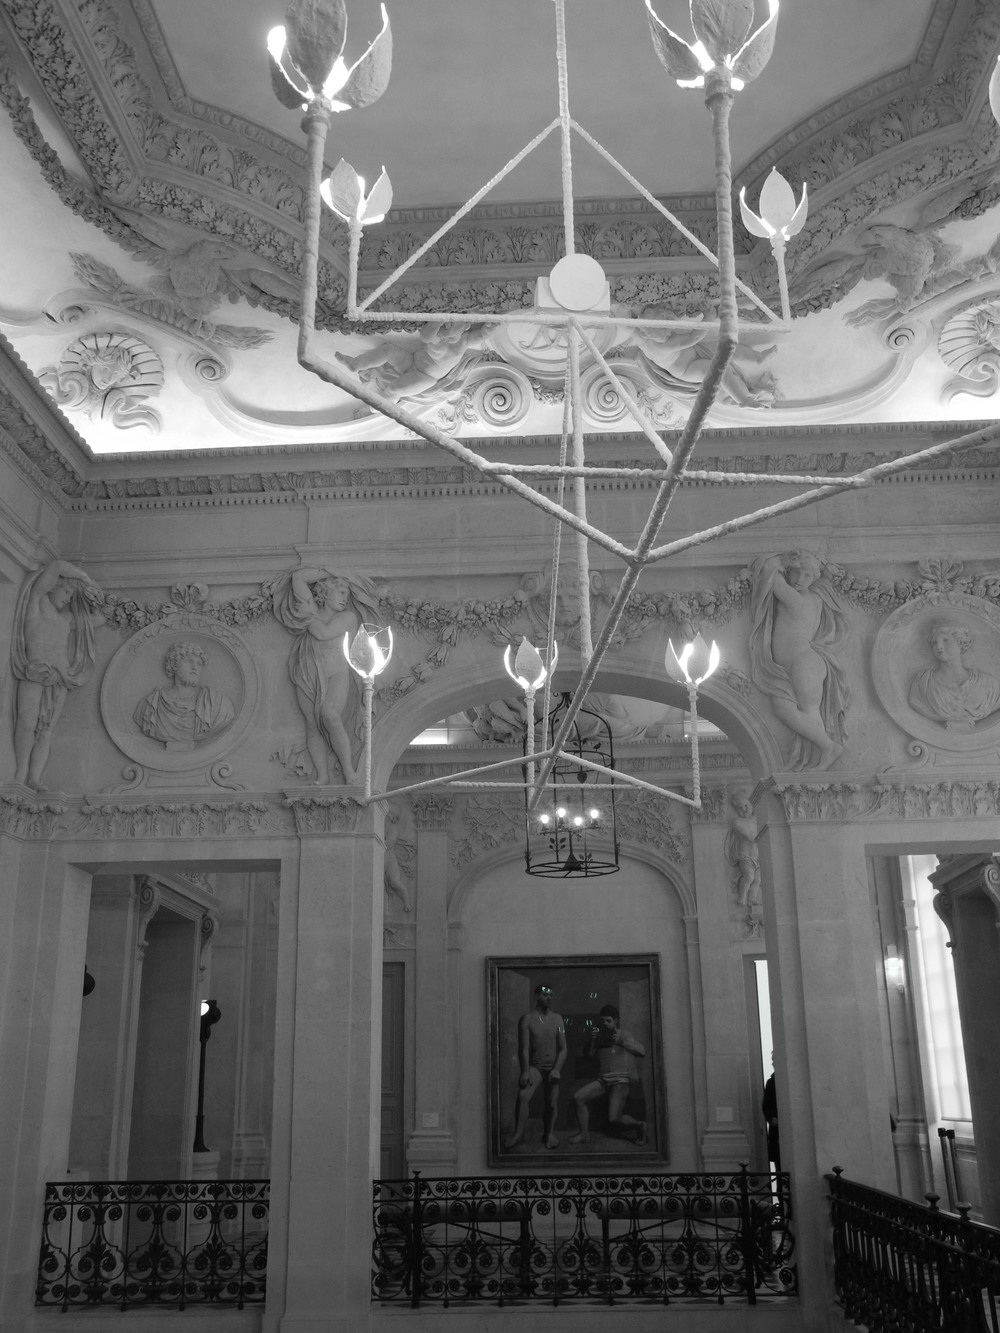 The modern white sculptural chandelier pops against the period details of the mansion, and a Picasso piece in the background.